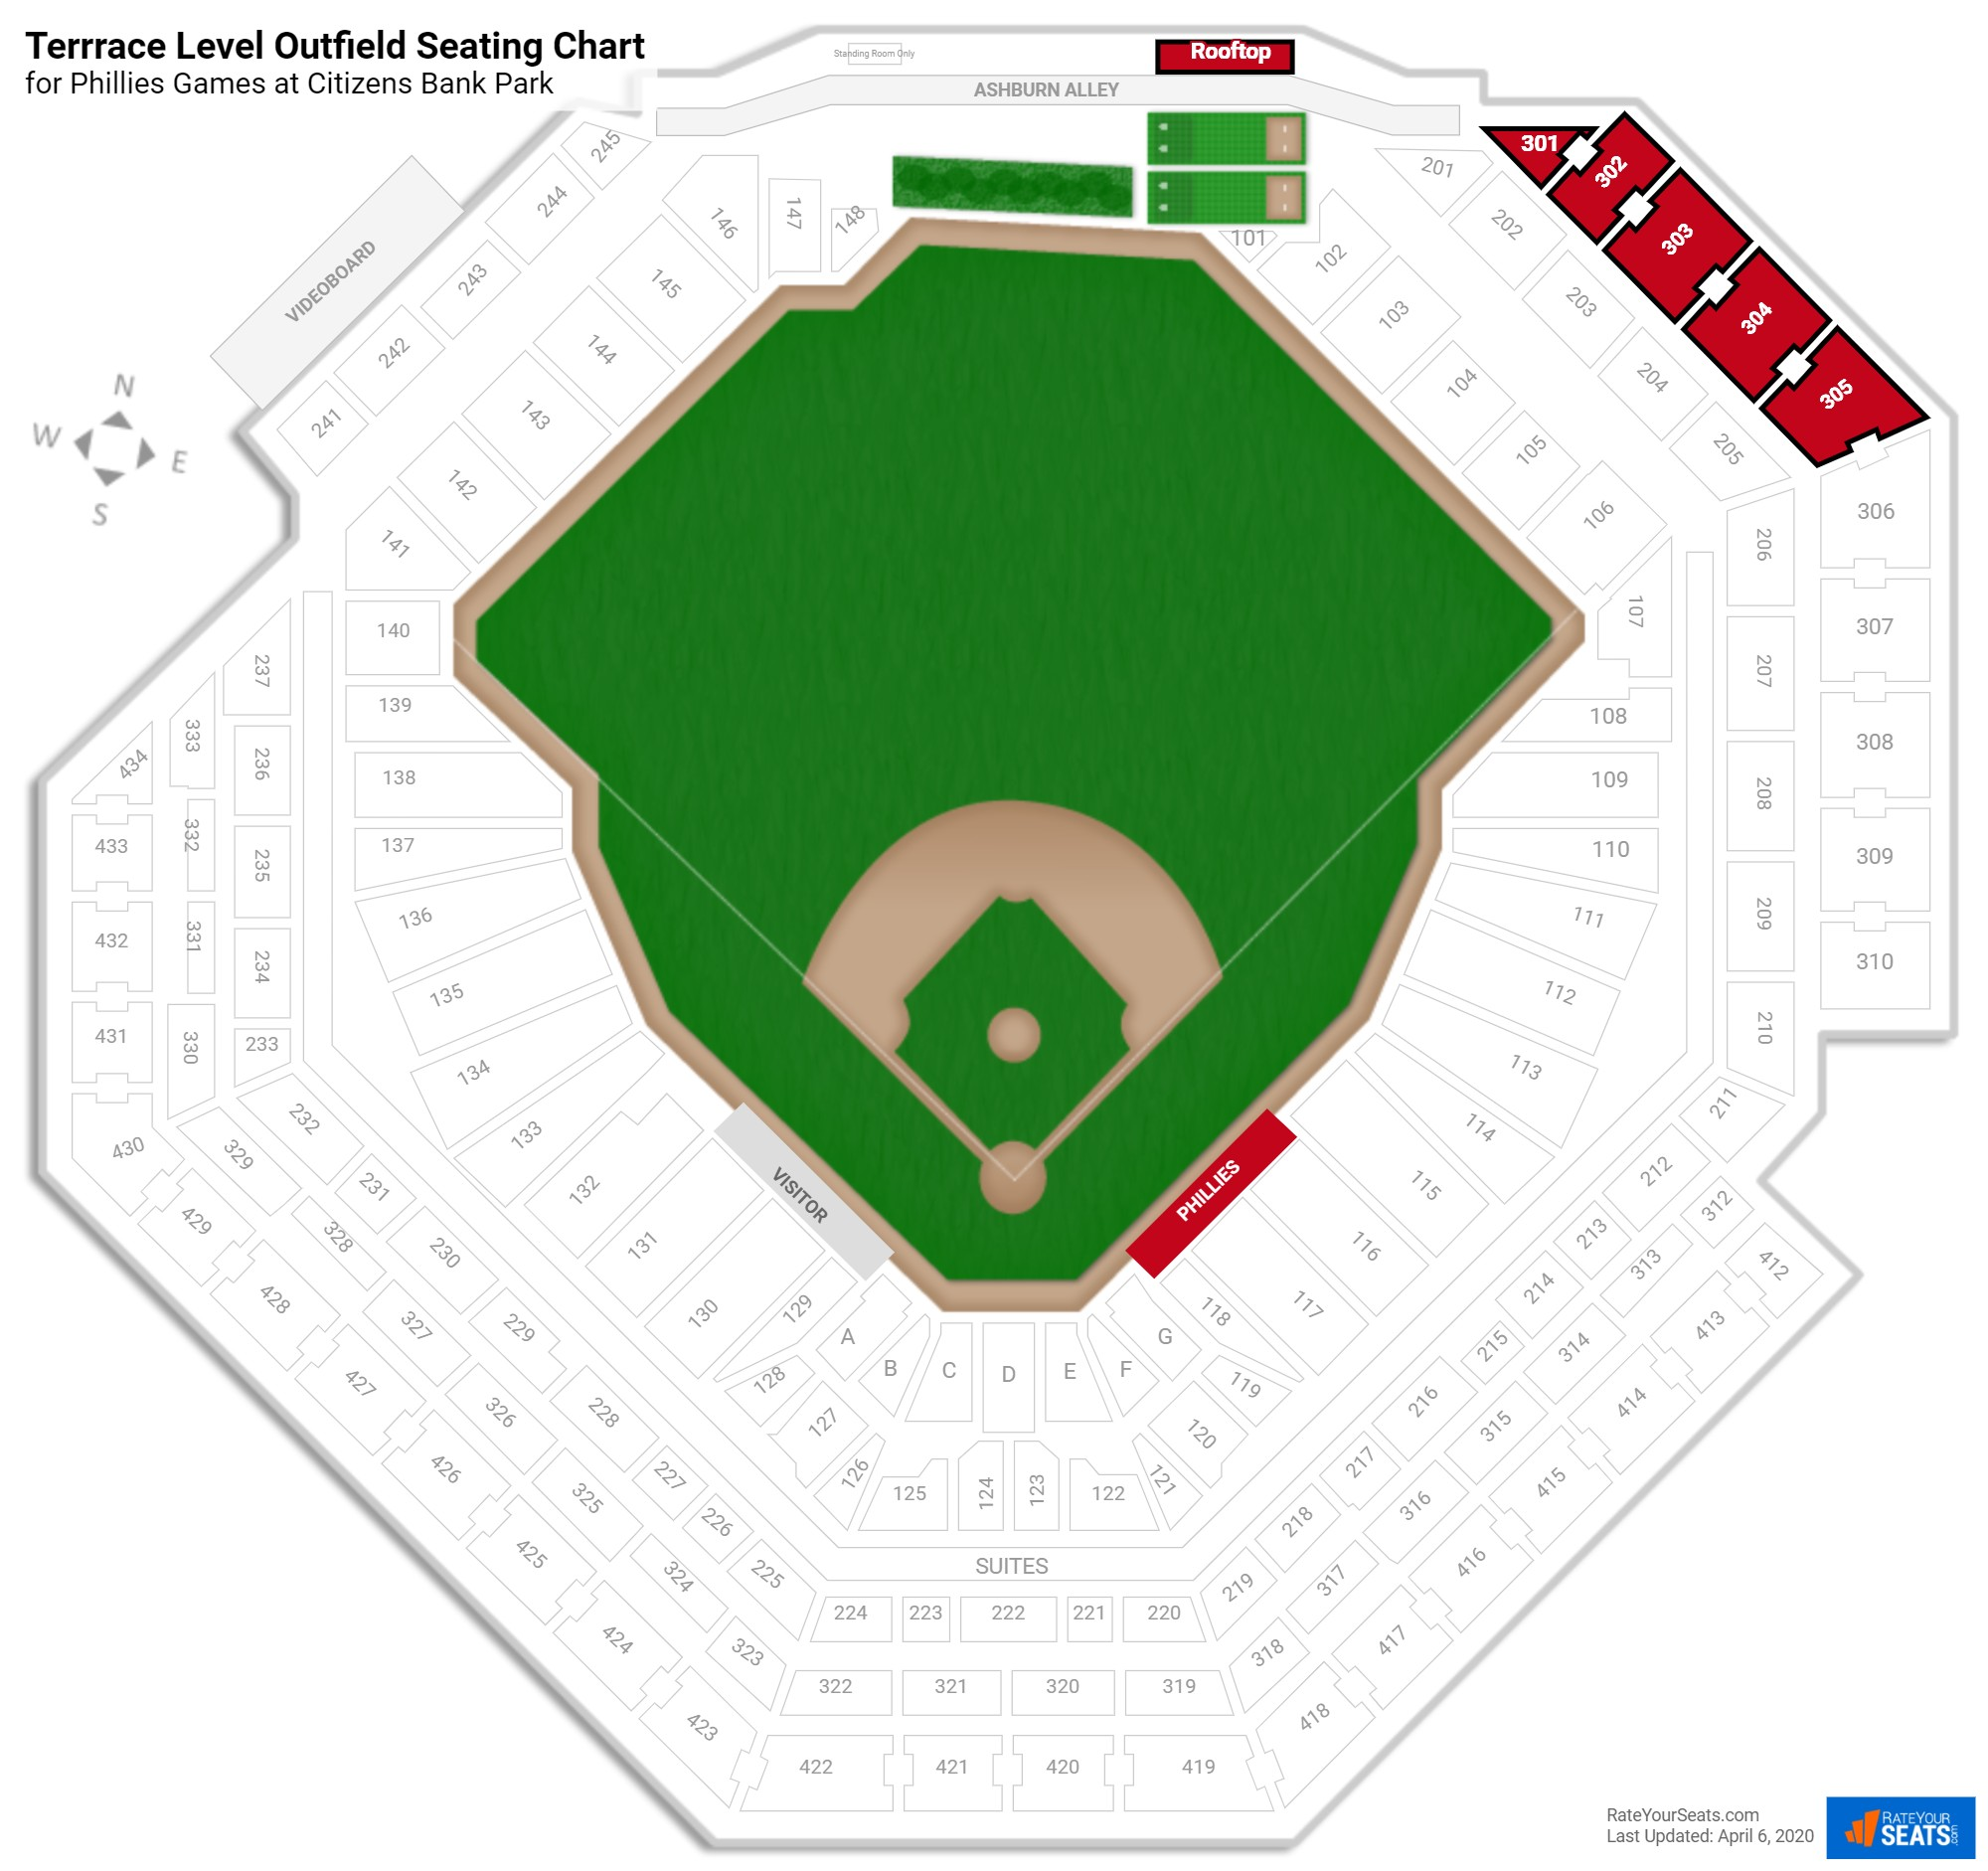 Citizens Bank Park Terrrace Level Outfield seating chart